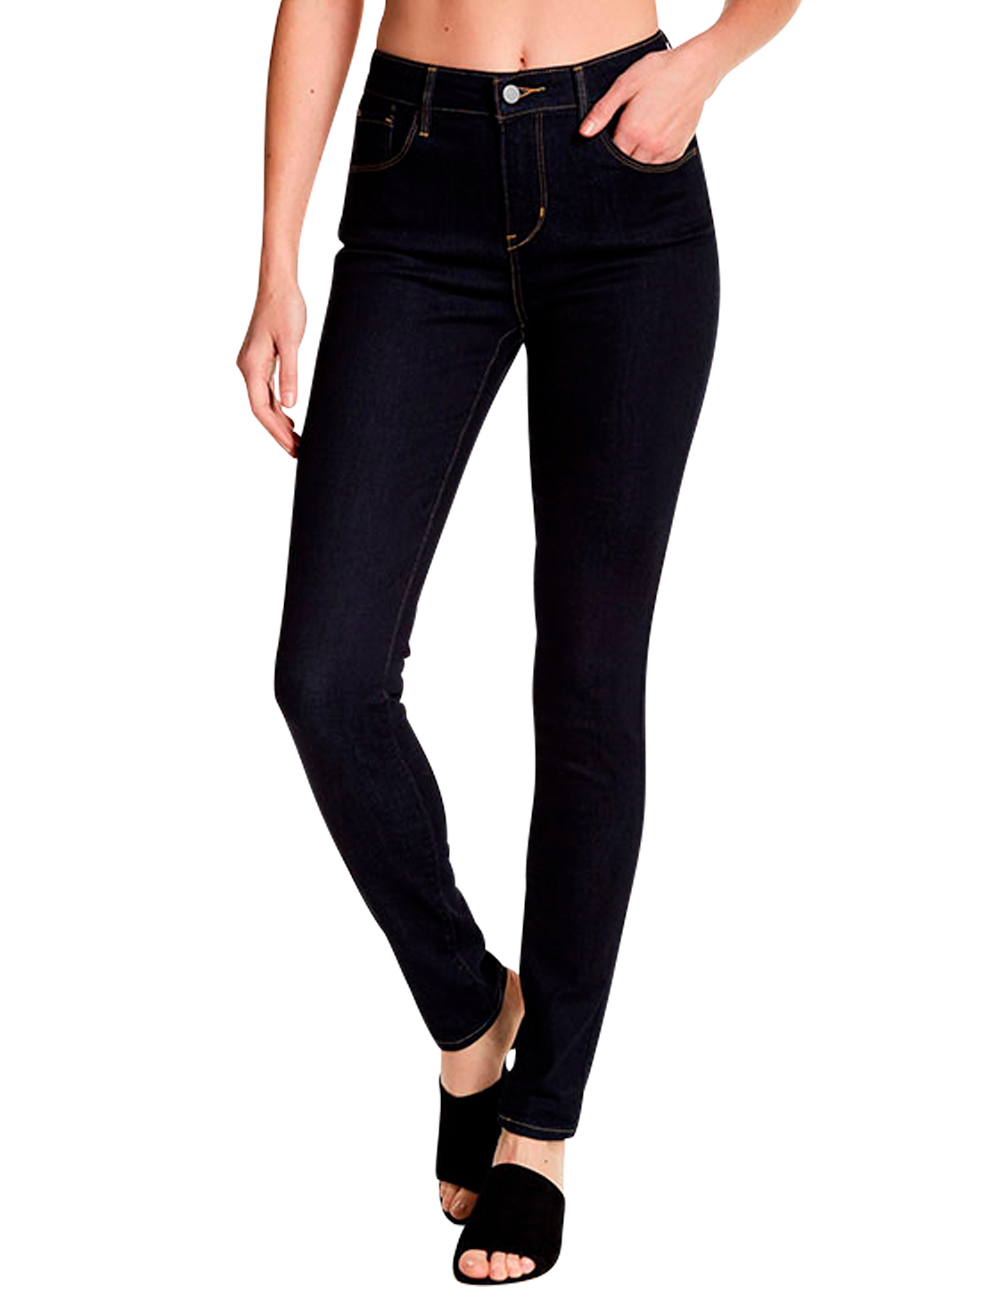 Jeans Skinny»Levi'sL Hoher Taille 32 «high Damen Mit Rise mNnOy08vwP